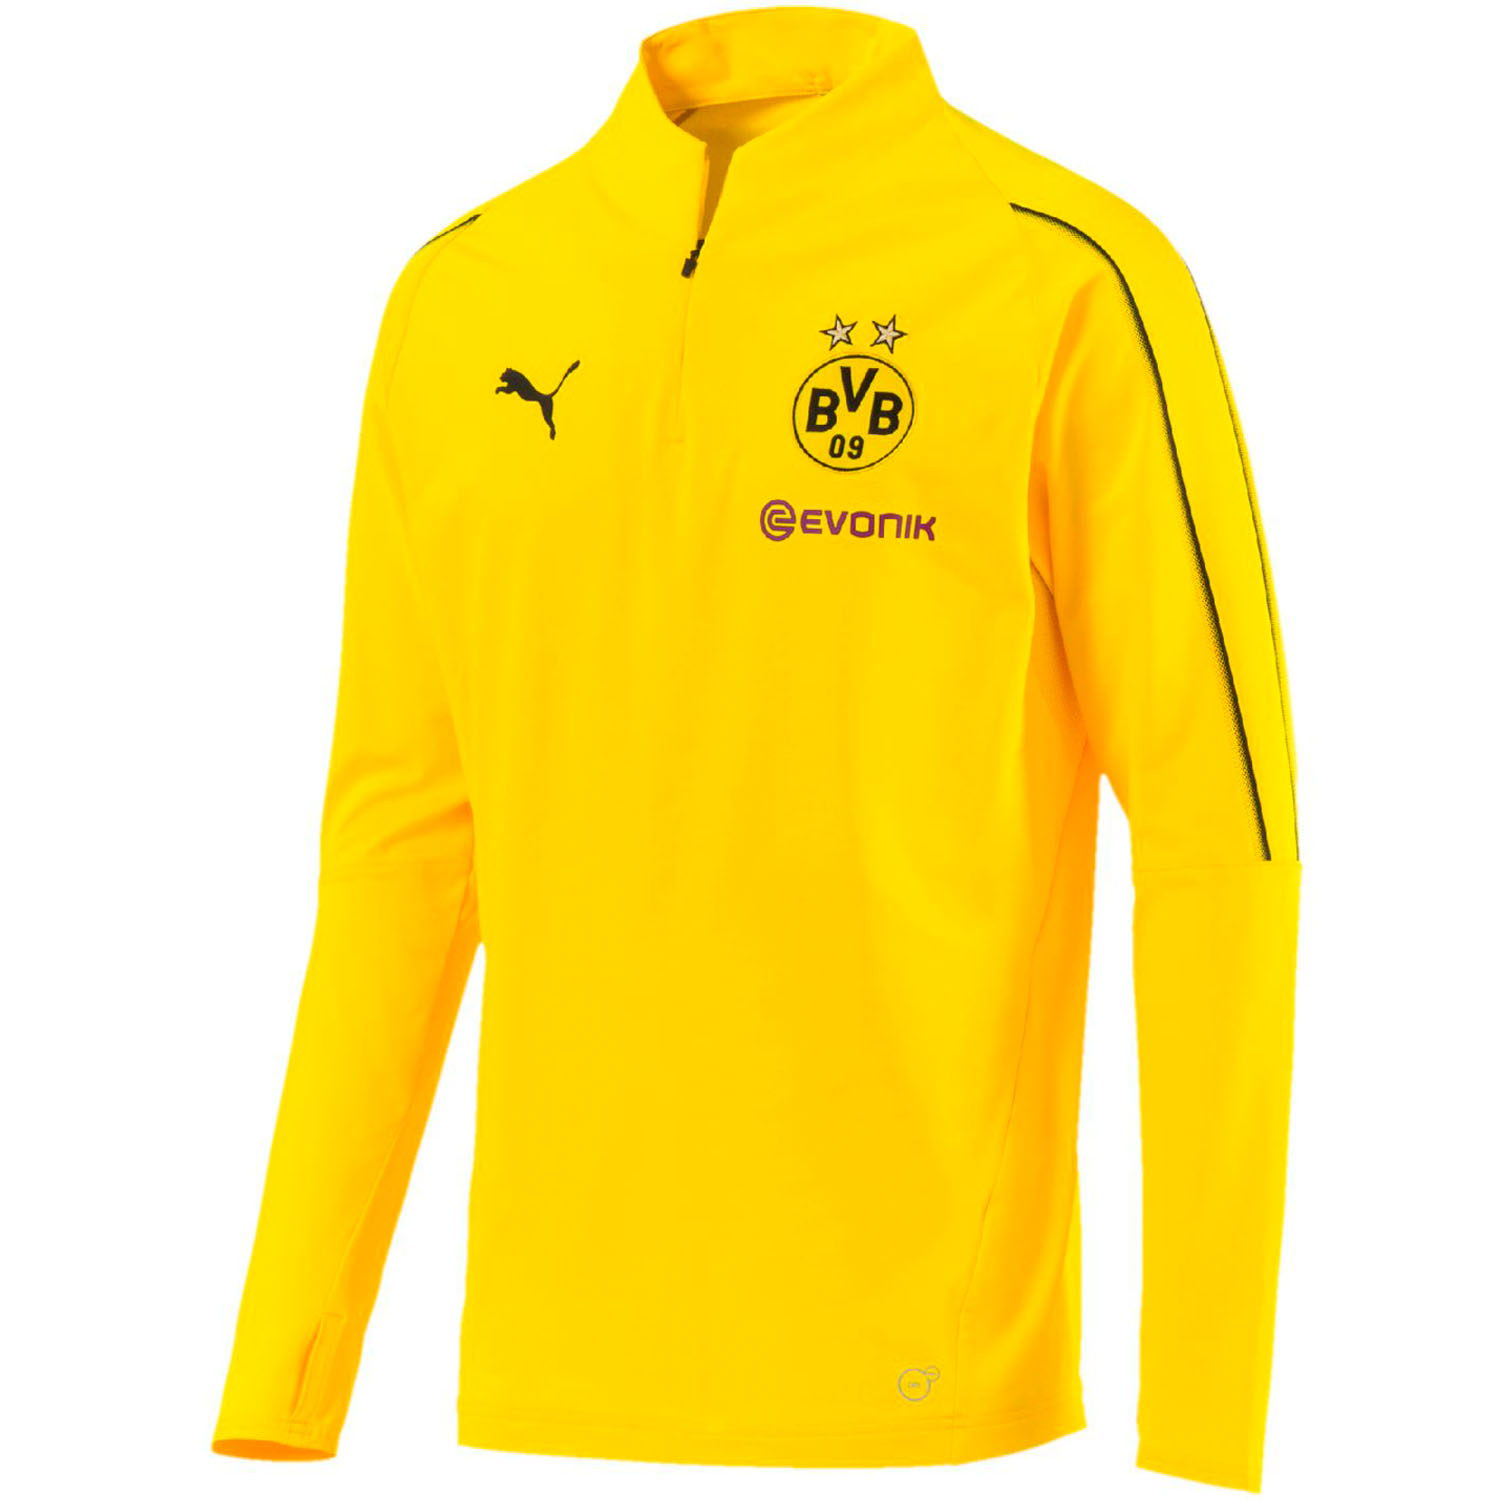 5b5ee67ac Puma BVB Dortmund Men s 1 4 Zip Training Top